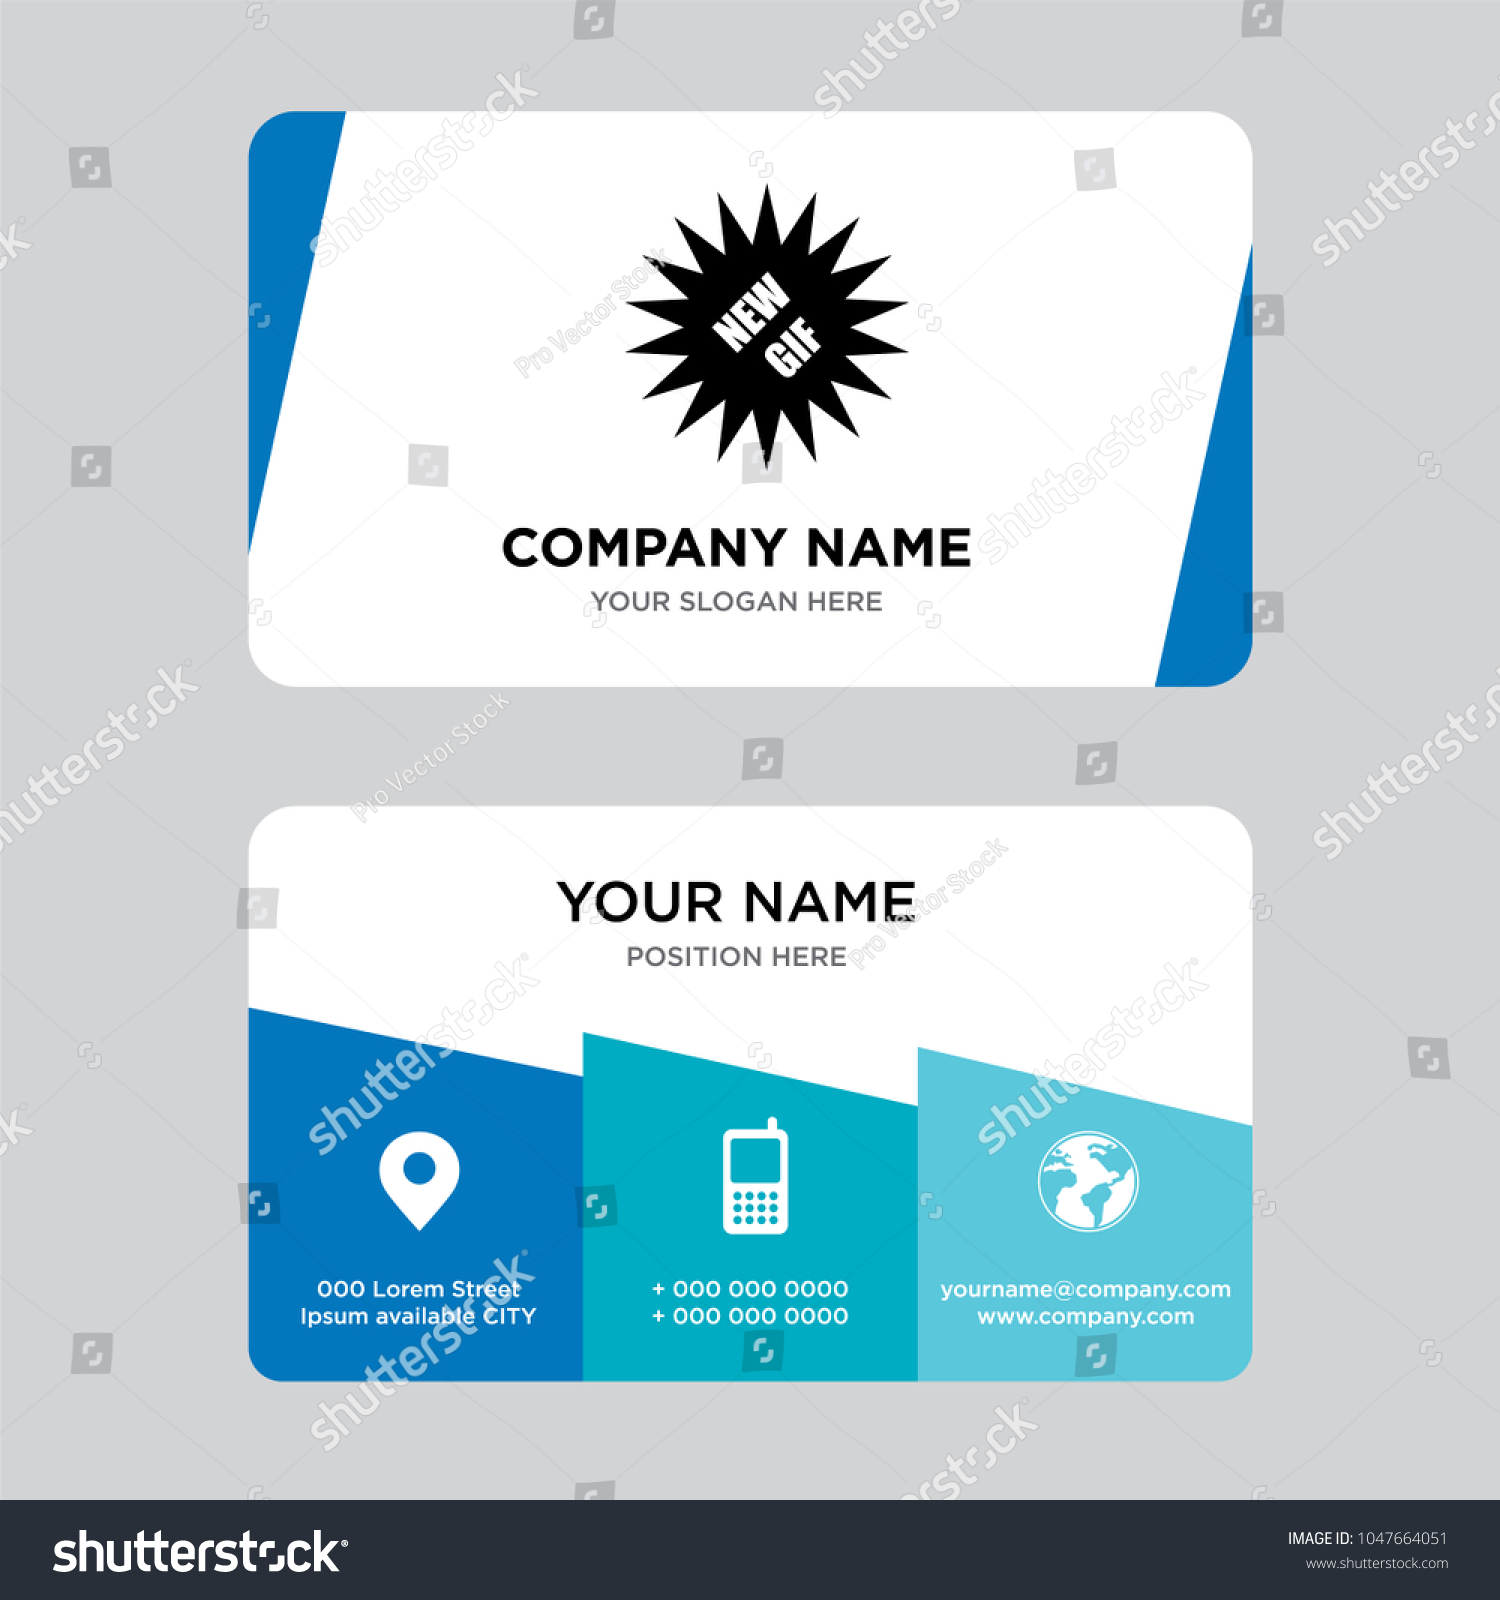 New gif business card design template stock vector 1047664051 new gif business card design template visiting for your company modern creative and clean friedricerecipe Image collections